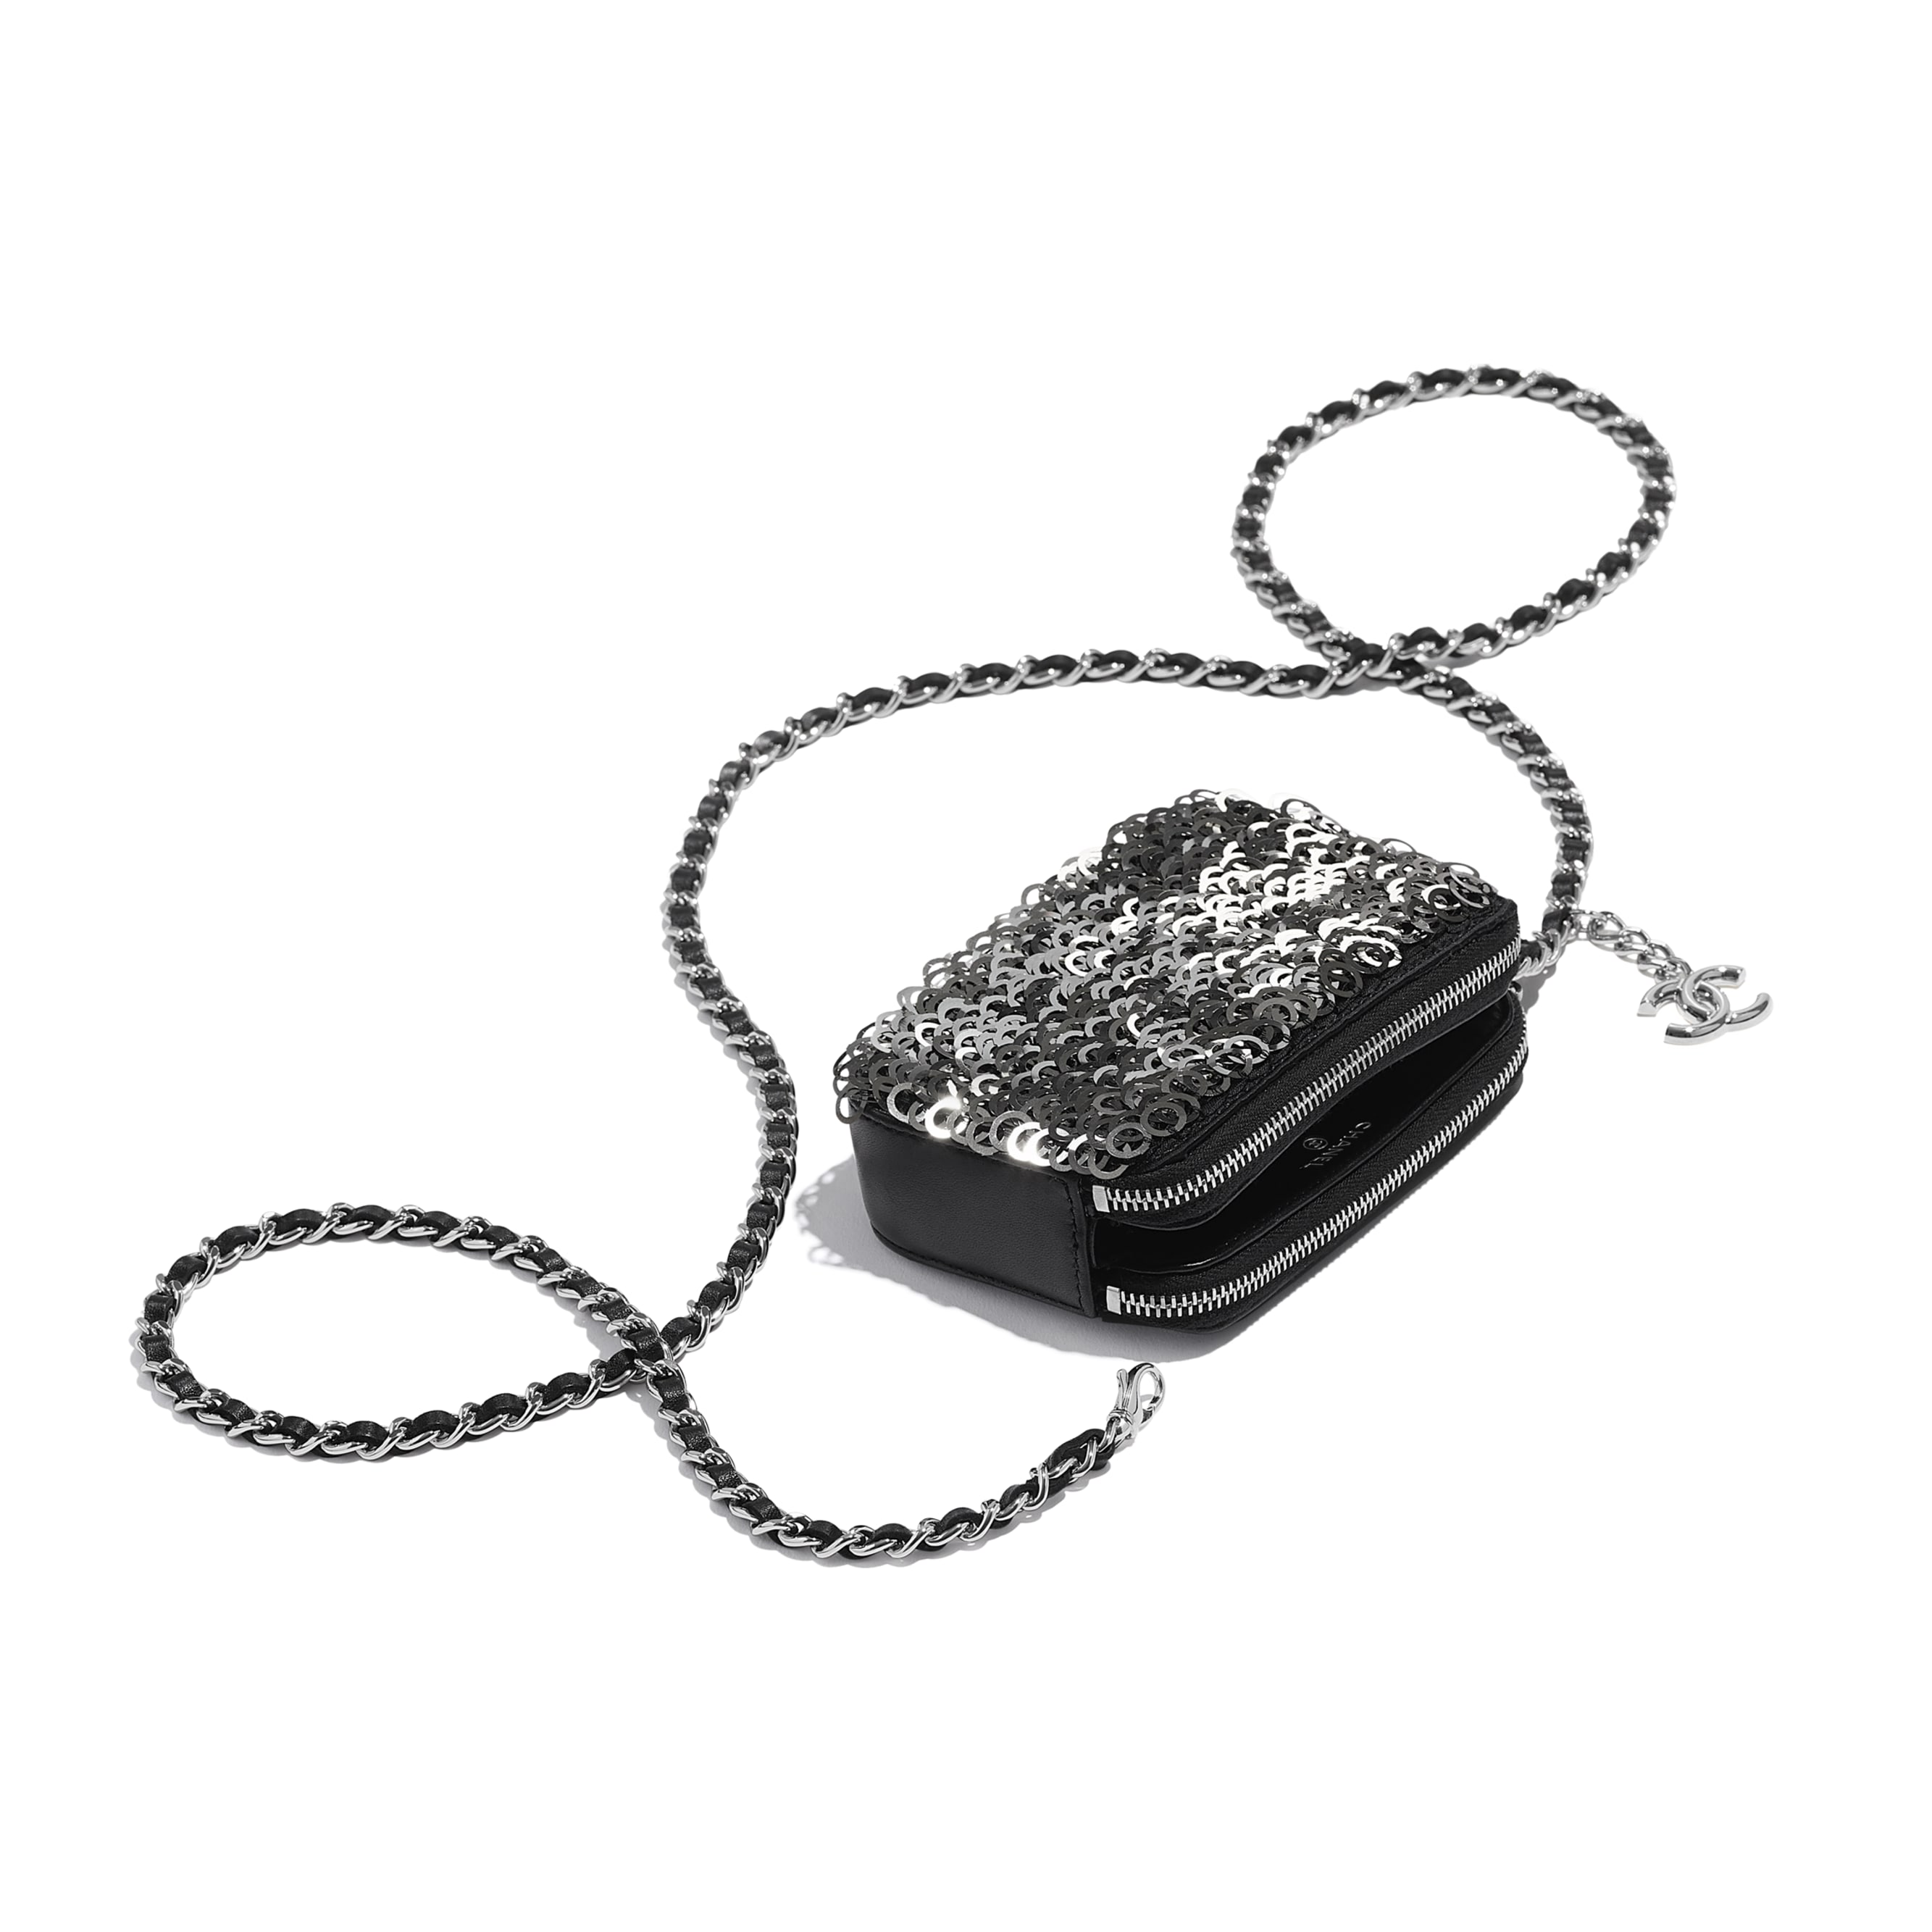 Clutch With Chain - Black, Silver & White - Lambskin, Sequins & Silver-Tone Metal - CHANEL - Extra view - see standard sized version